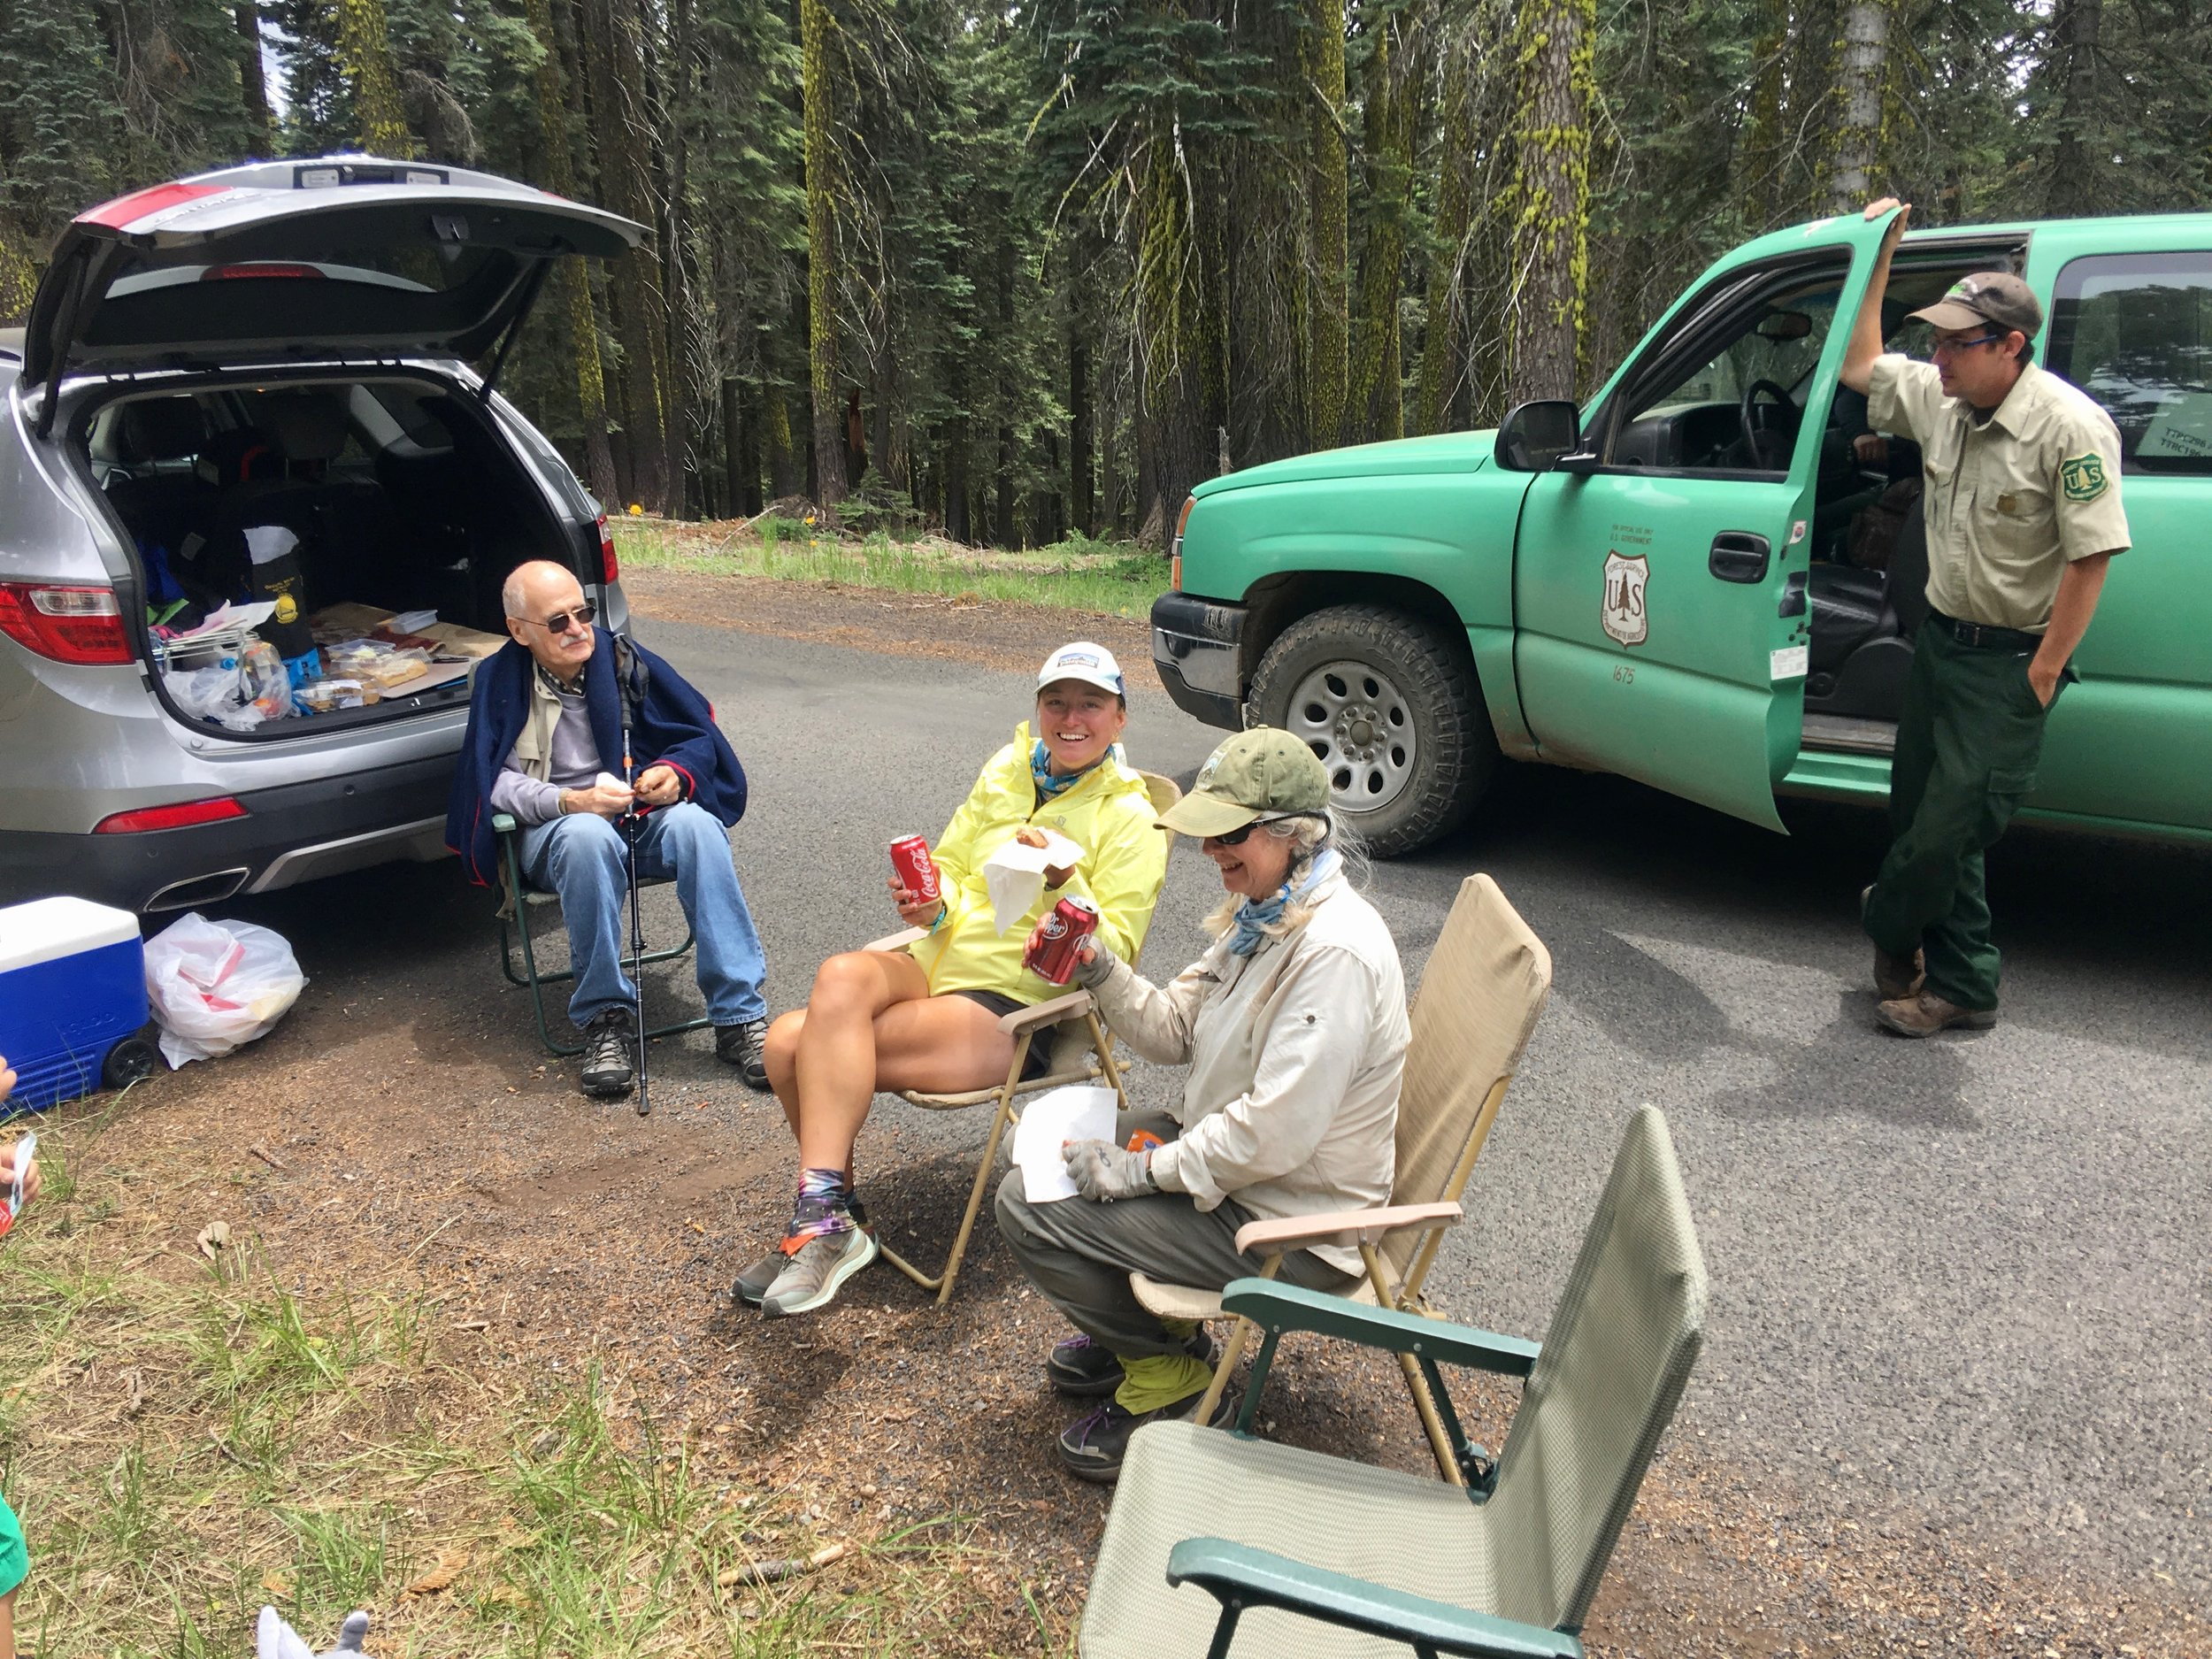 Even a forest service personal stopped by to say Hi. It was a nice break with good conversation. I have a feeling that we were the only hikers that day, but we sure appreciated their hospitality.